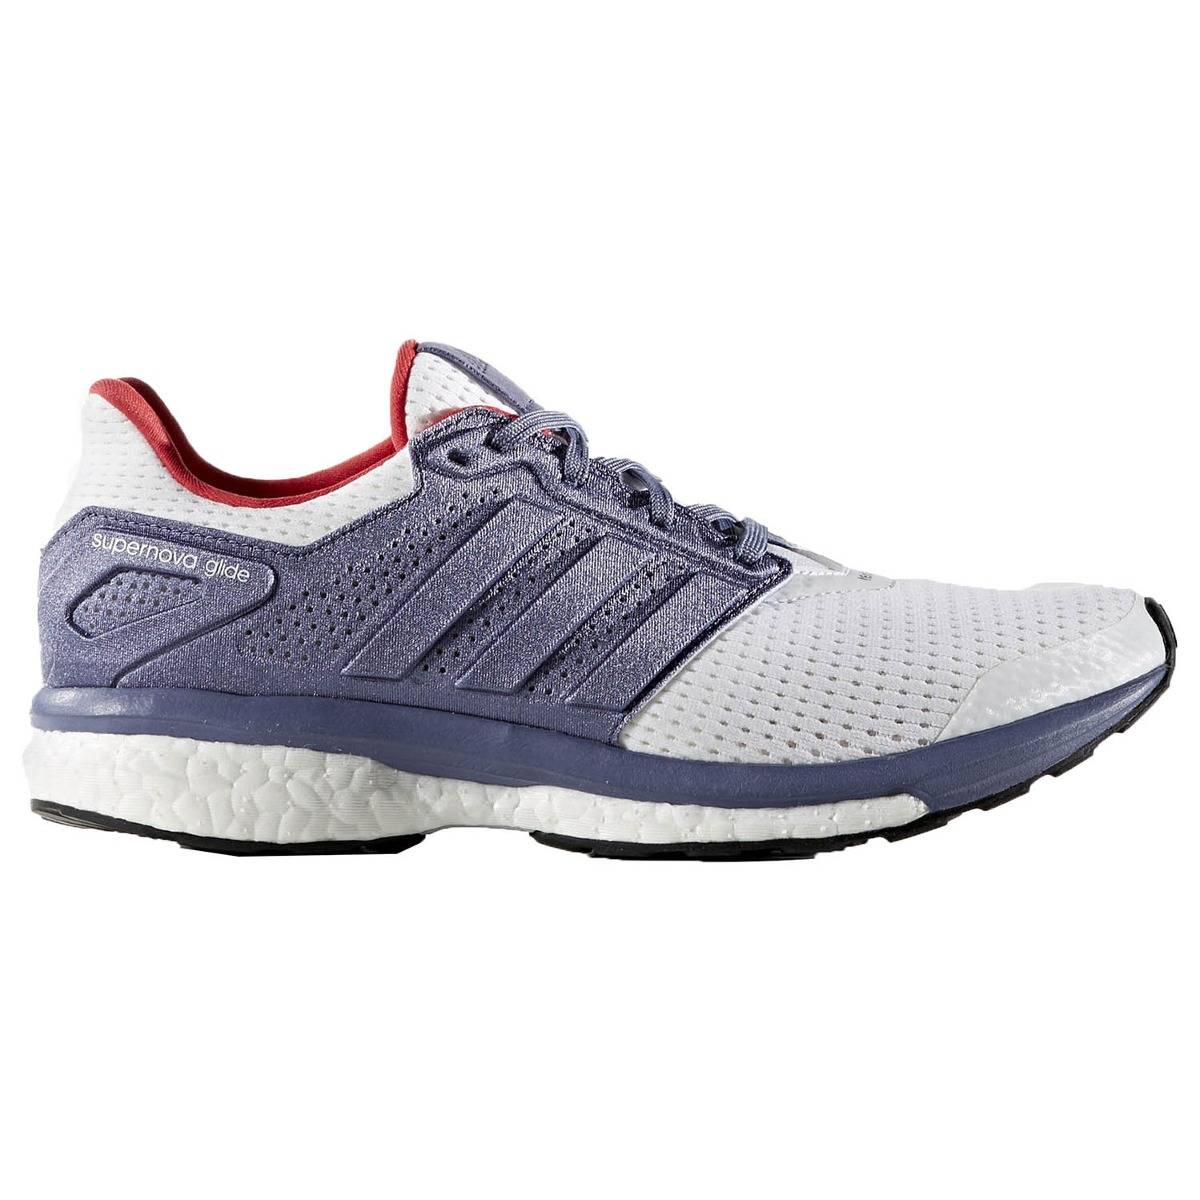 Zapatillas adidas Supernova Glide 8 s80277 Open Sports